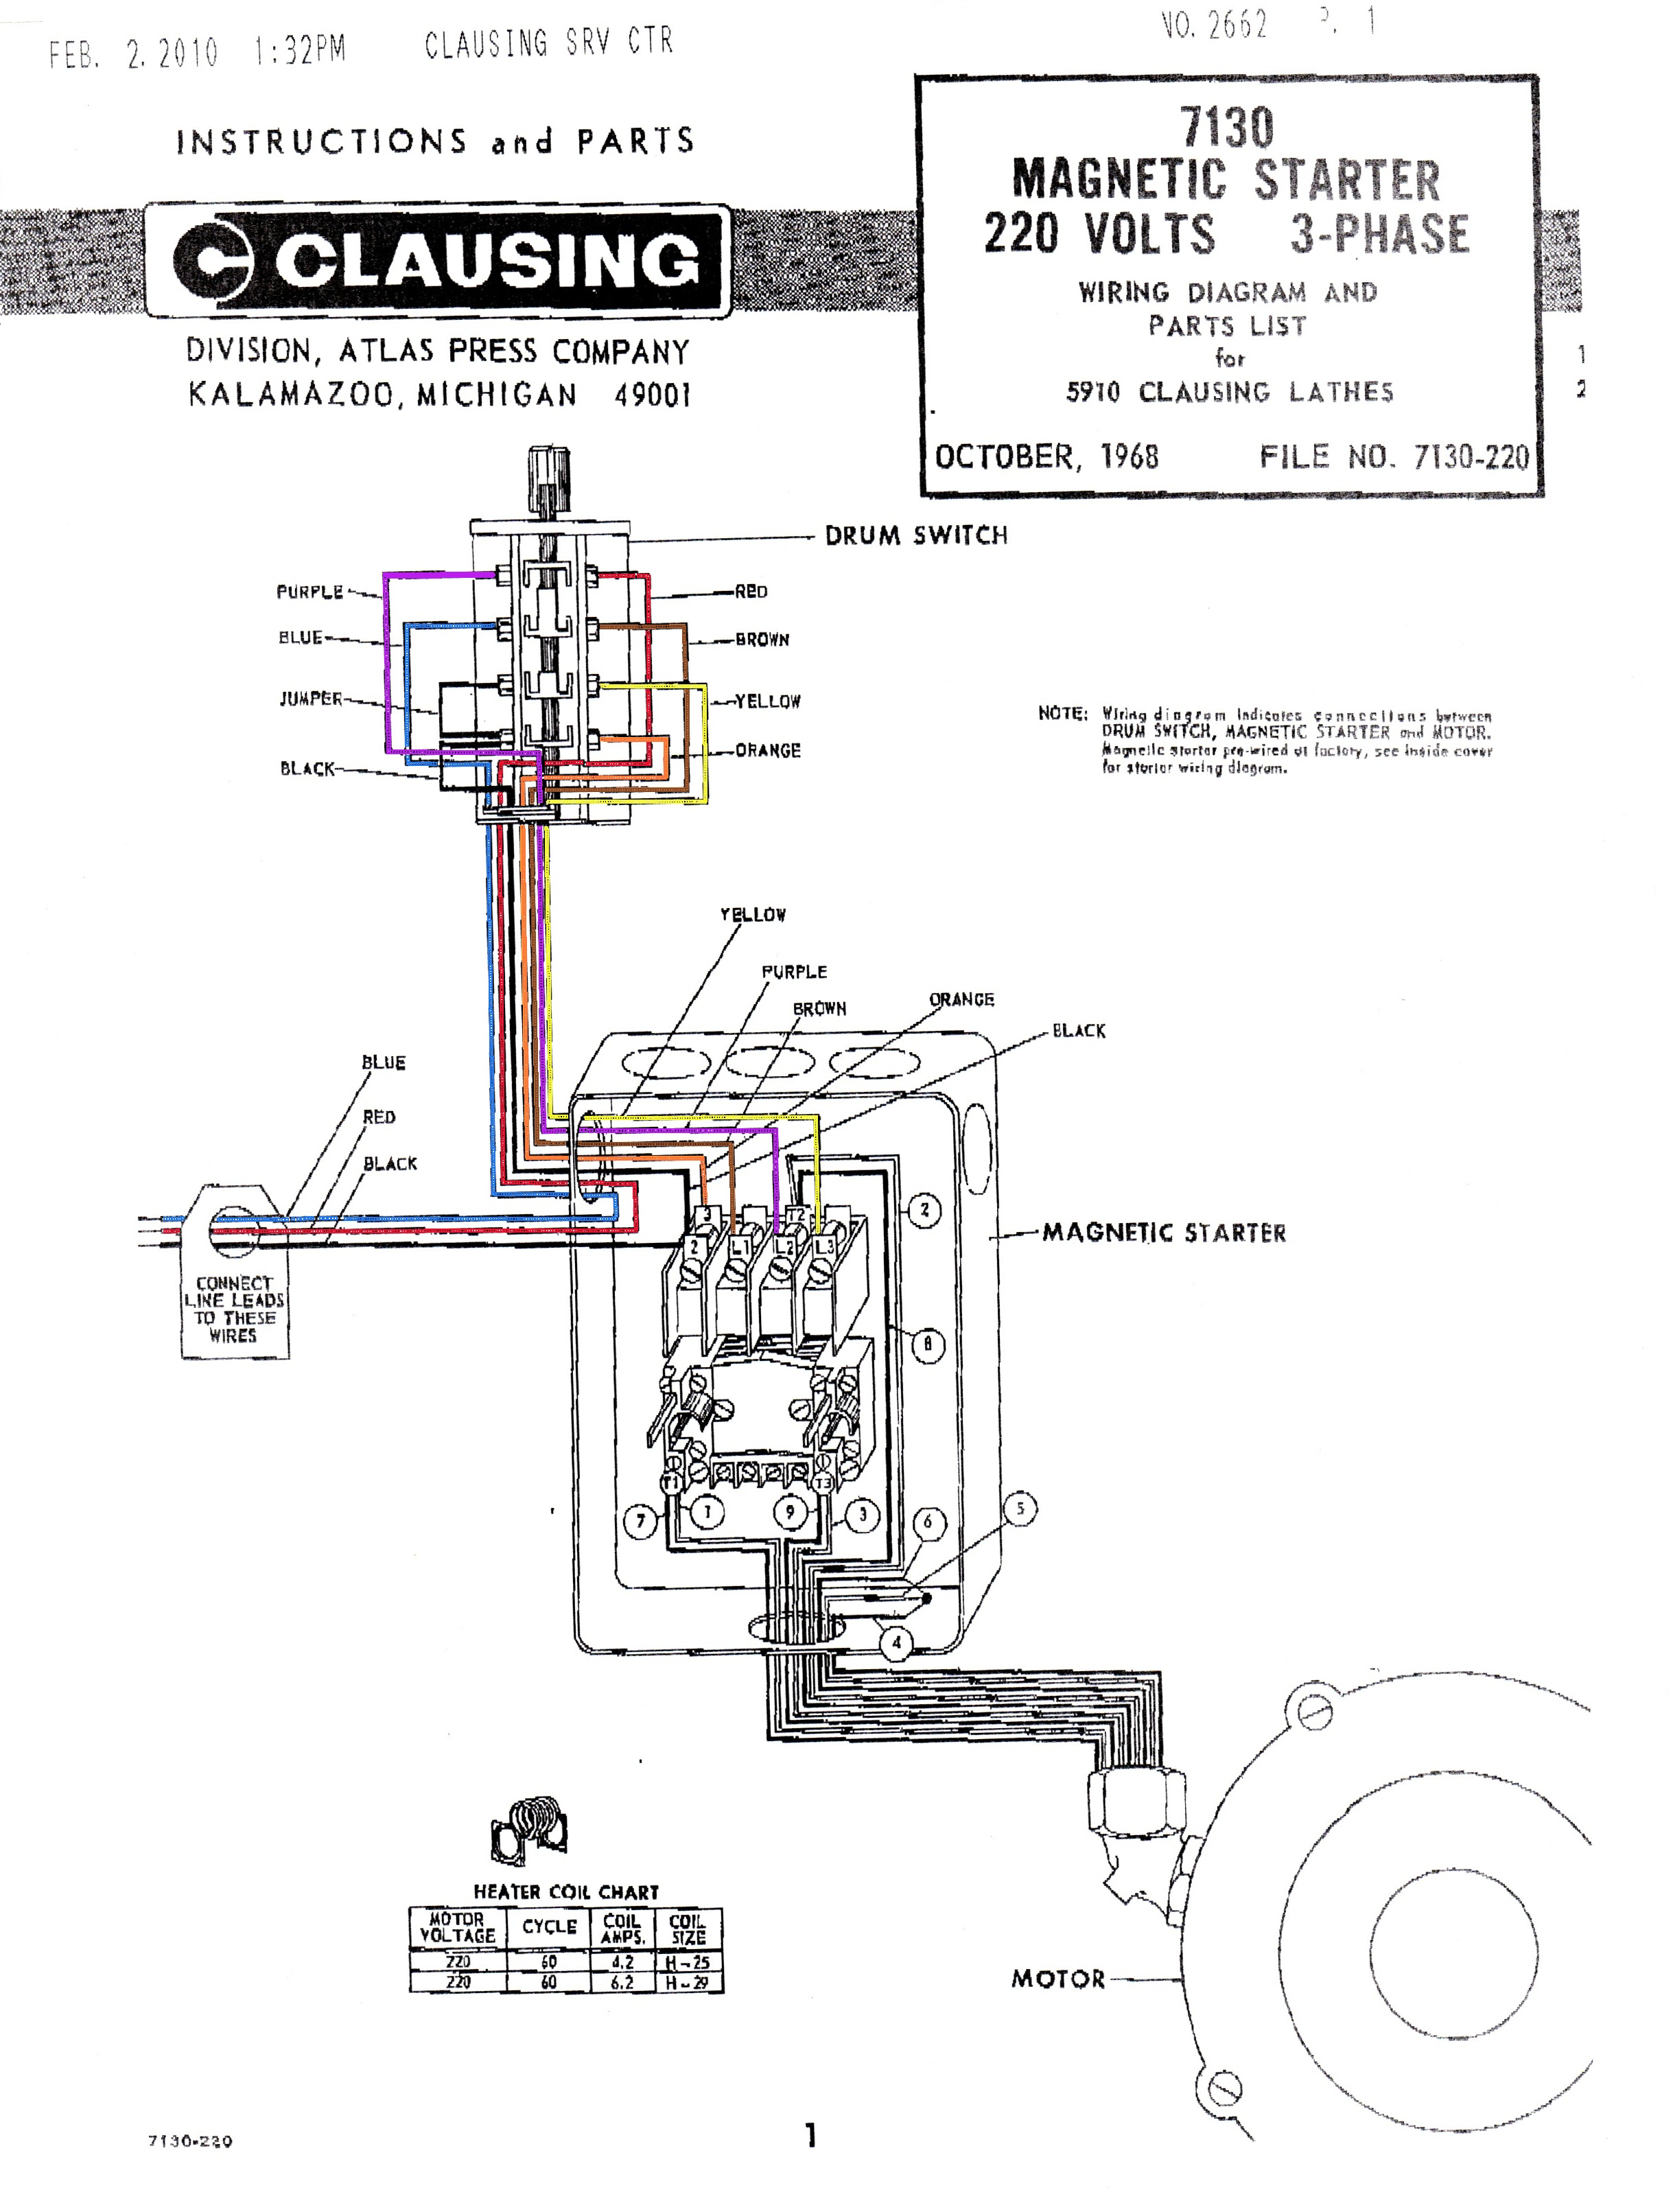 7130 Magnetic Starter Wiring Diagram Color starter wiring diagrams mag wiring diagrams instruction starter wiring diagram at creativeand.co